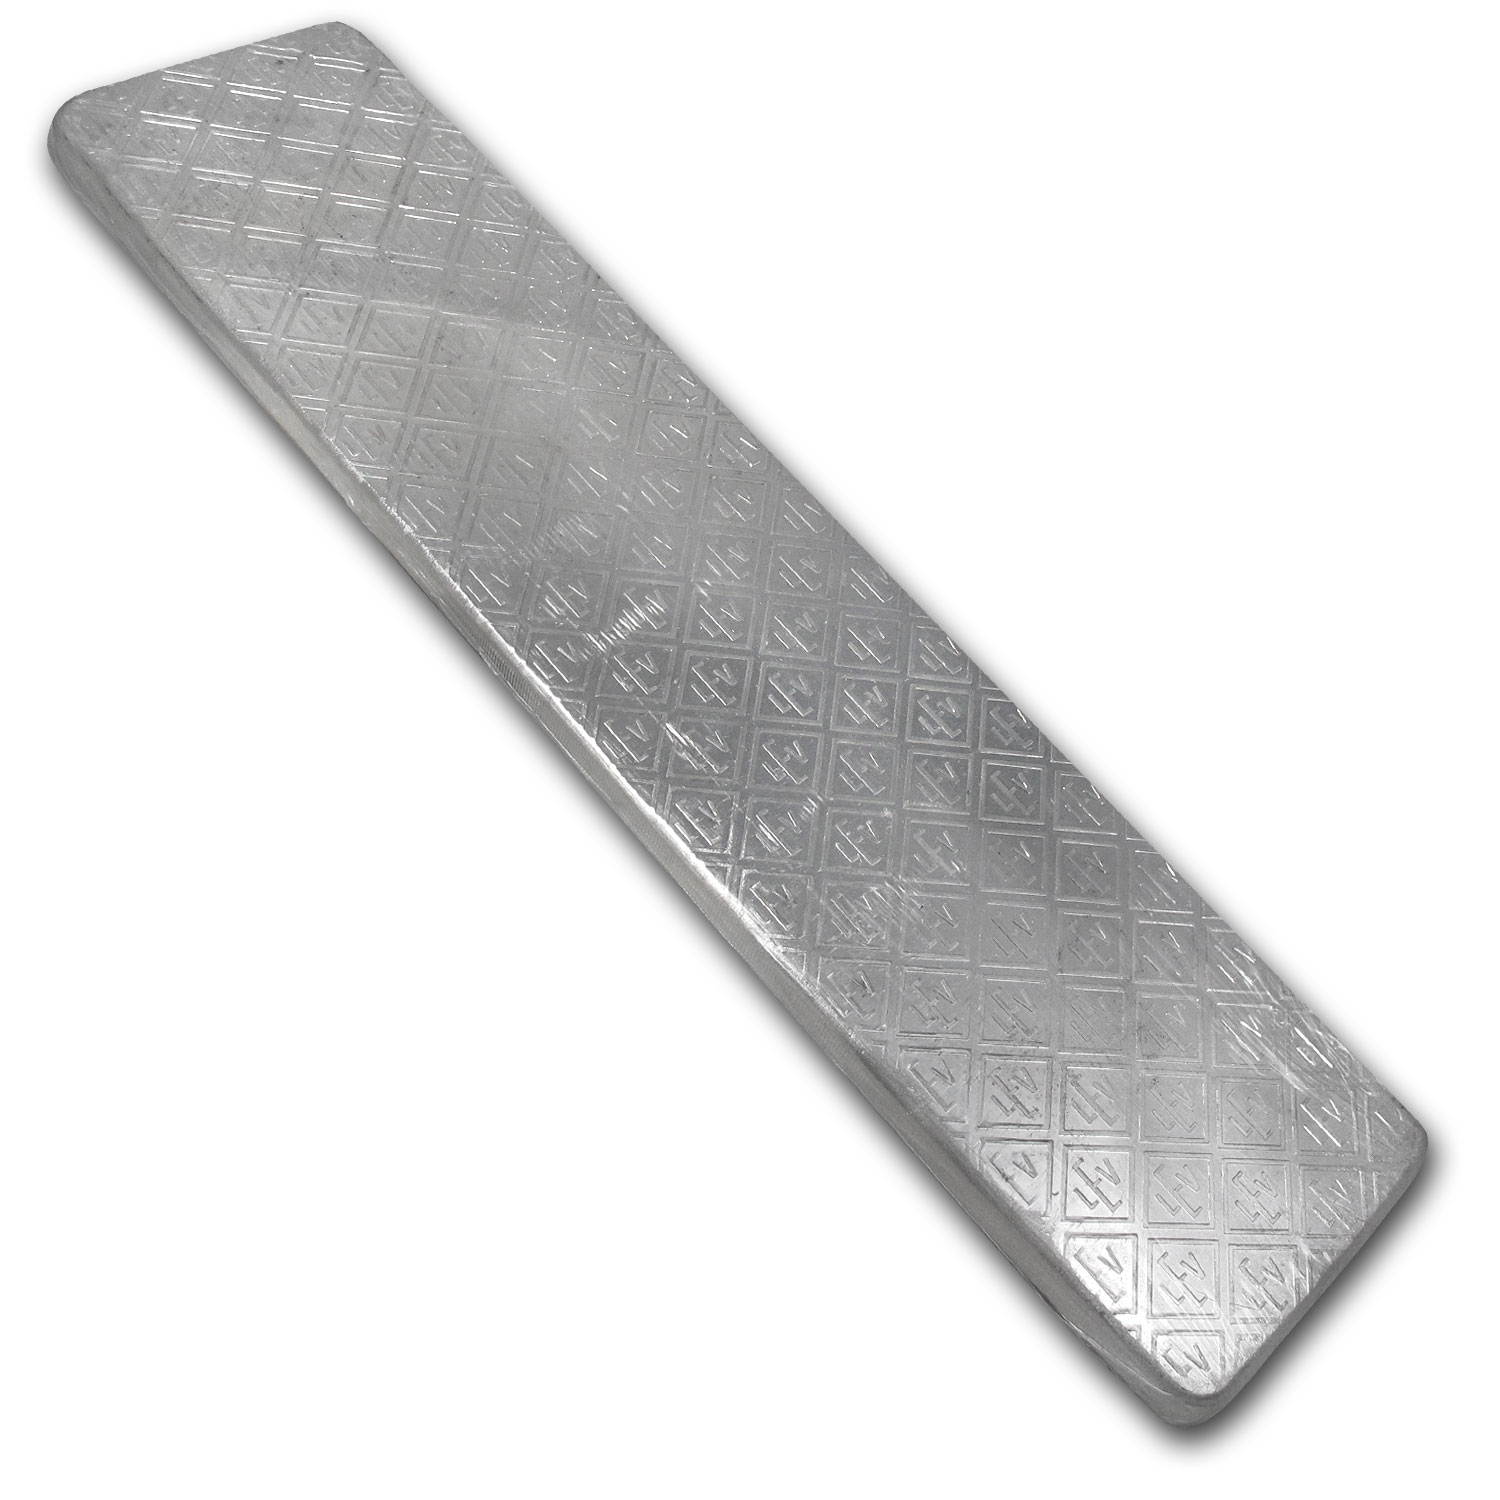 100 oz Silver Bars - Geiger (Security Line Series/Scruffy)